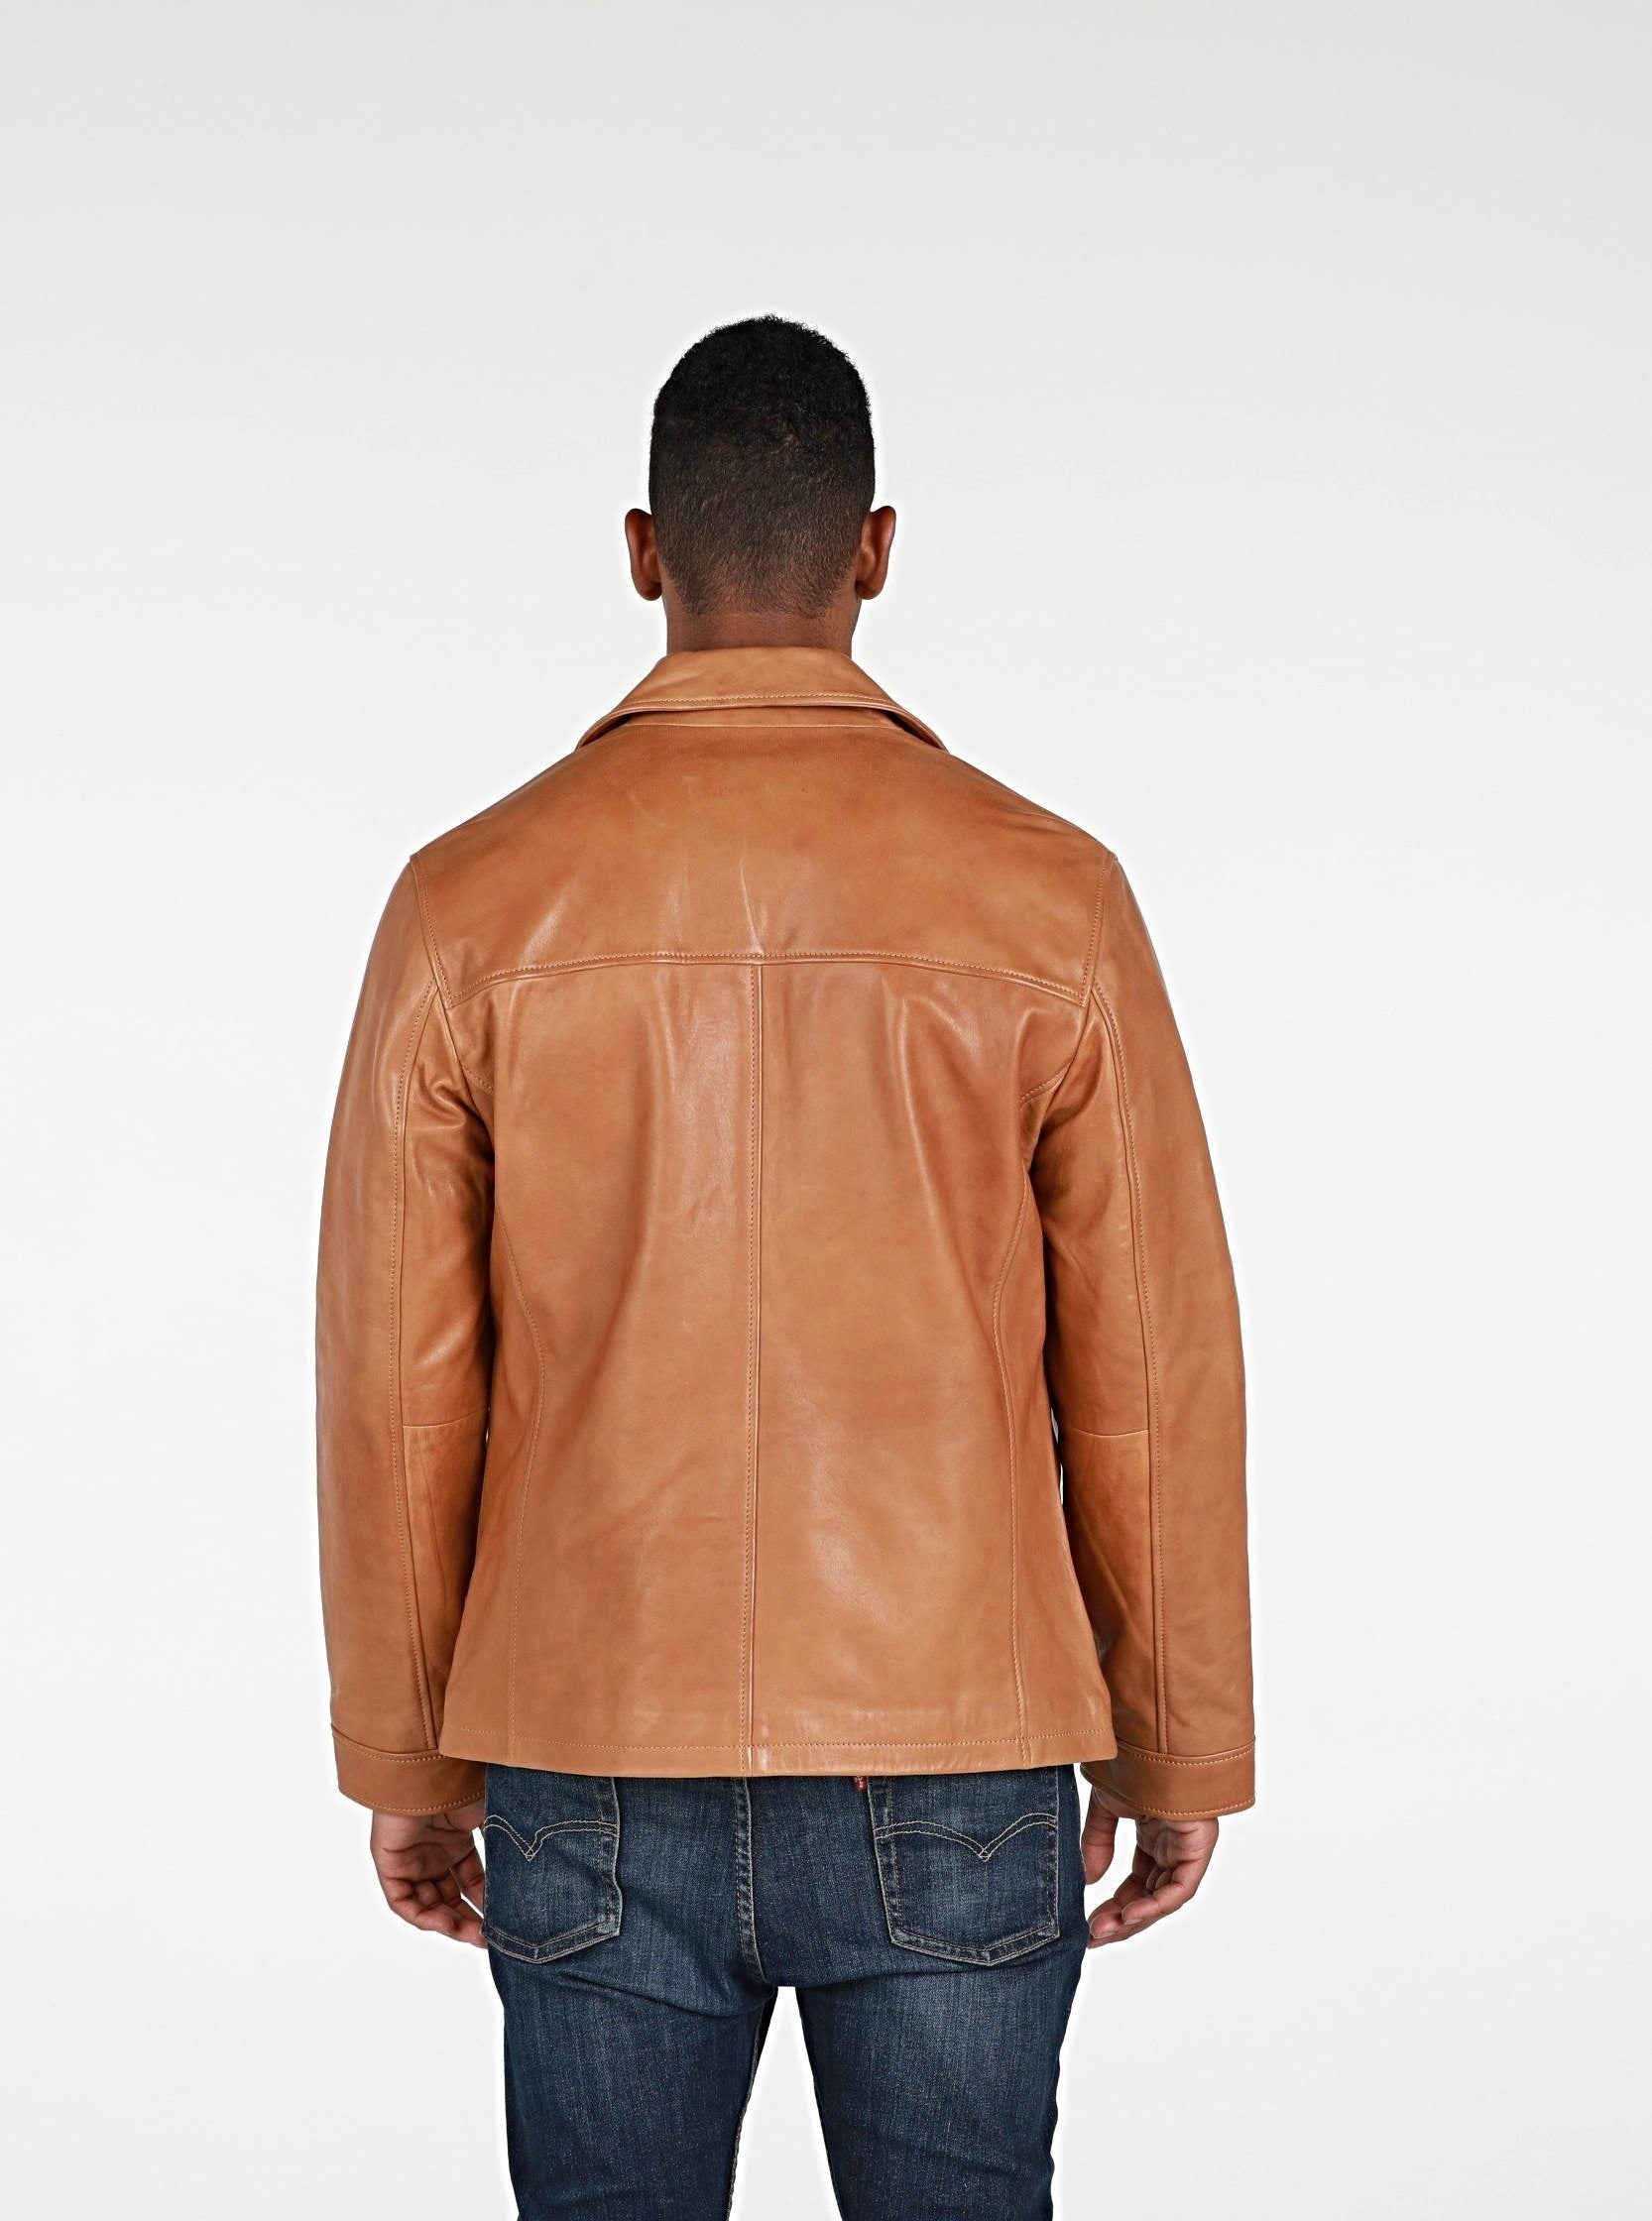 Leather Jacket - Abbyse Mens Leather Jacket Lambskin - New!